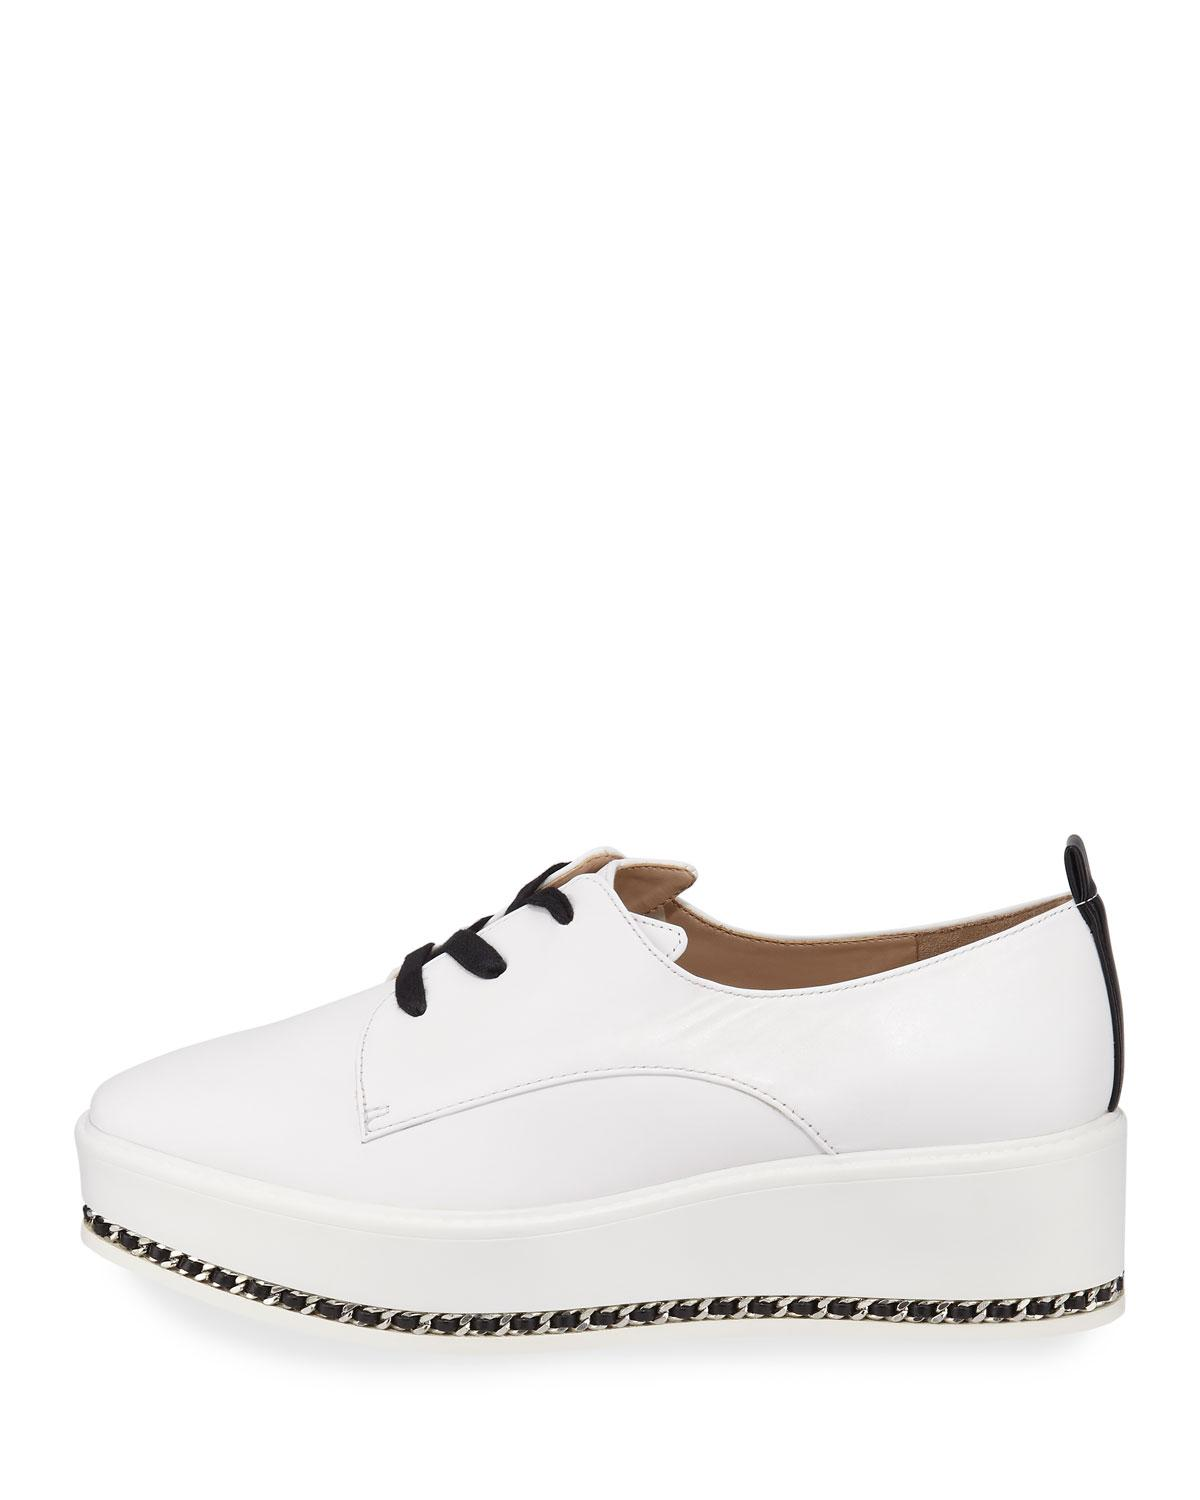 0d13ae89f701 Lyst - Karl Lagerfeld Bali Leather Platform Sneakers in White